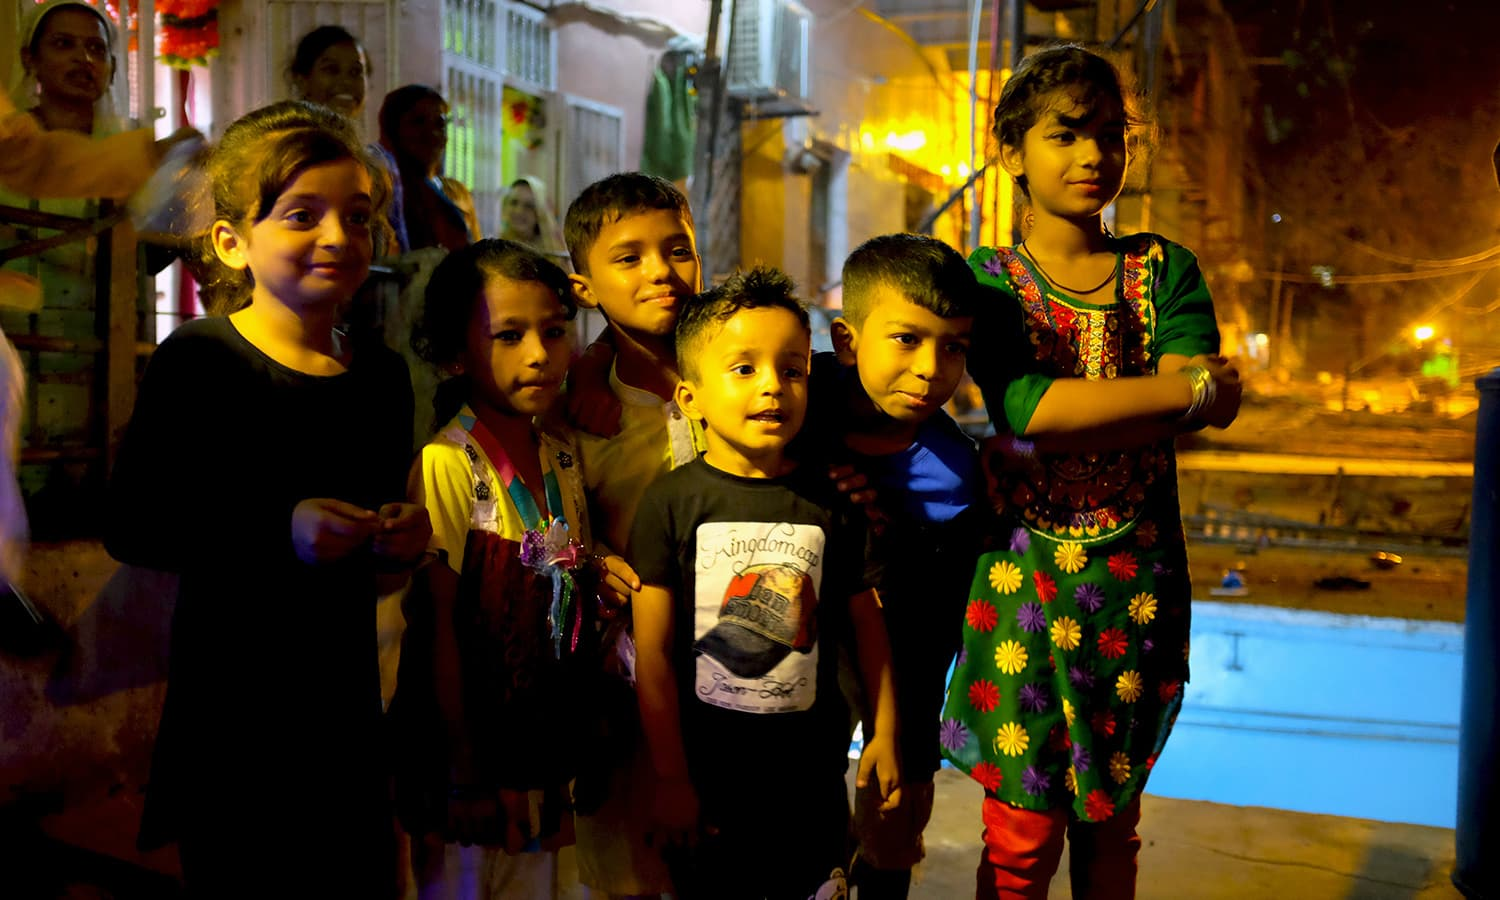 A group of children wishes us a happy Diwali.